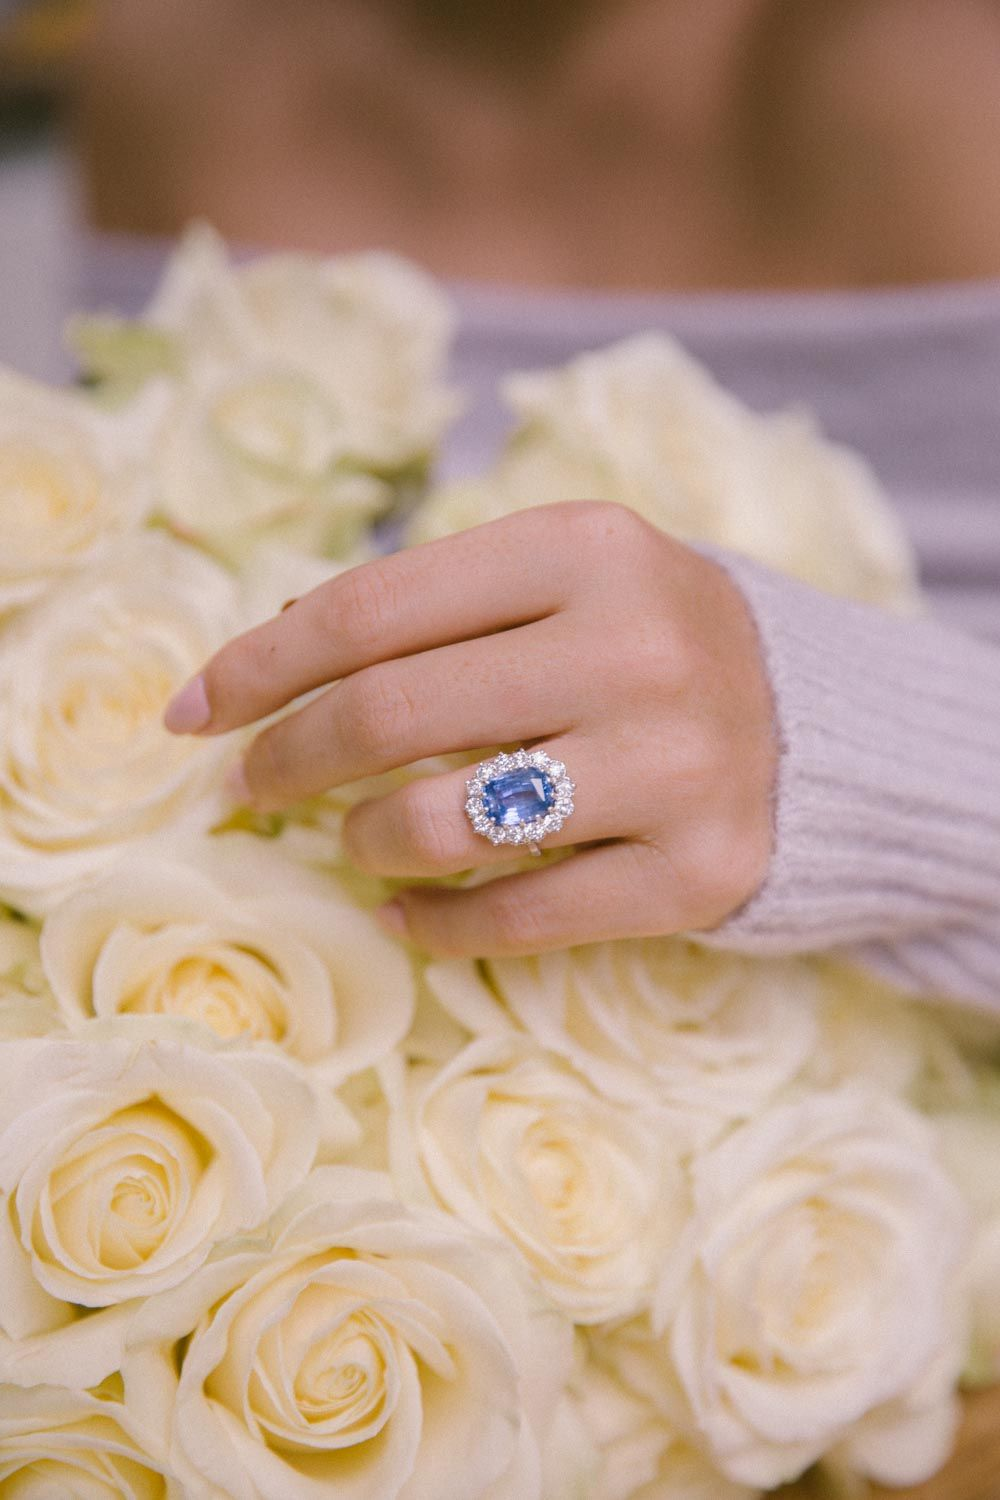 A Pale Blue Sapphire With A Cluster Of Diamonds And The Tiniest